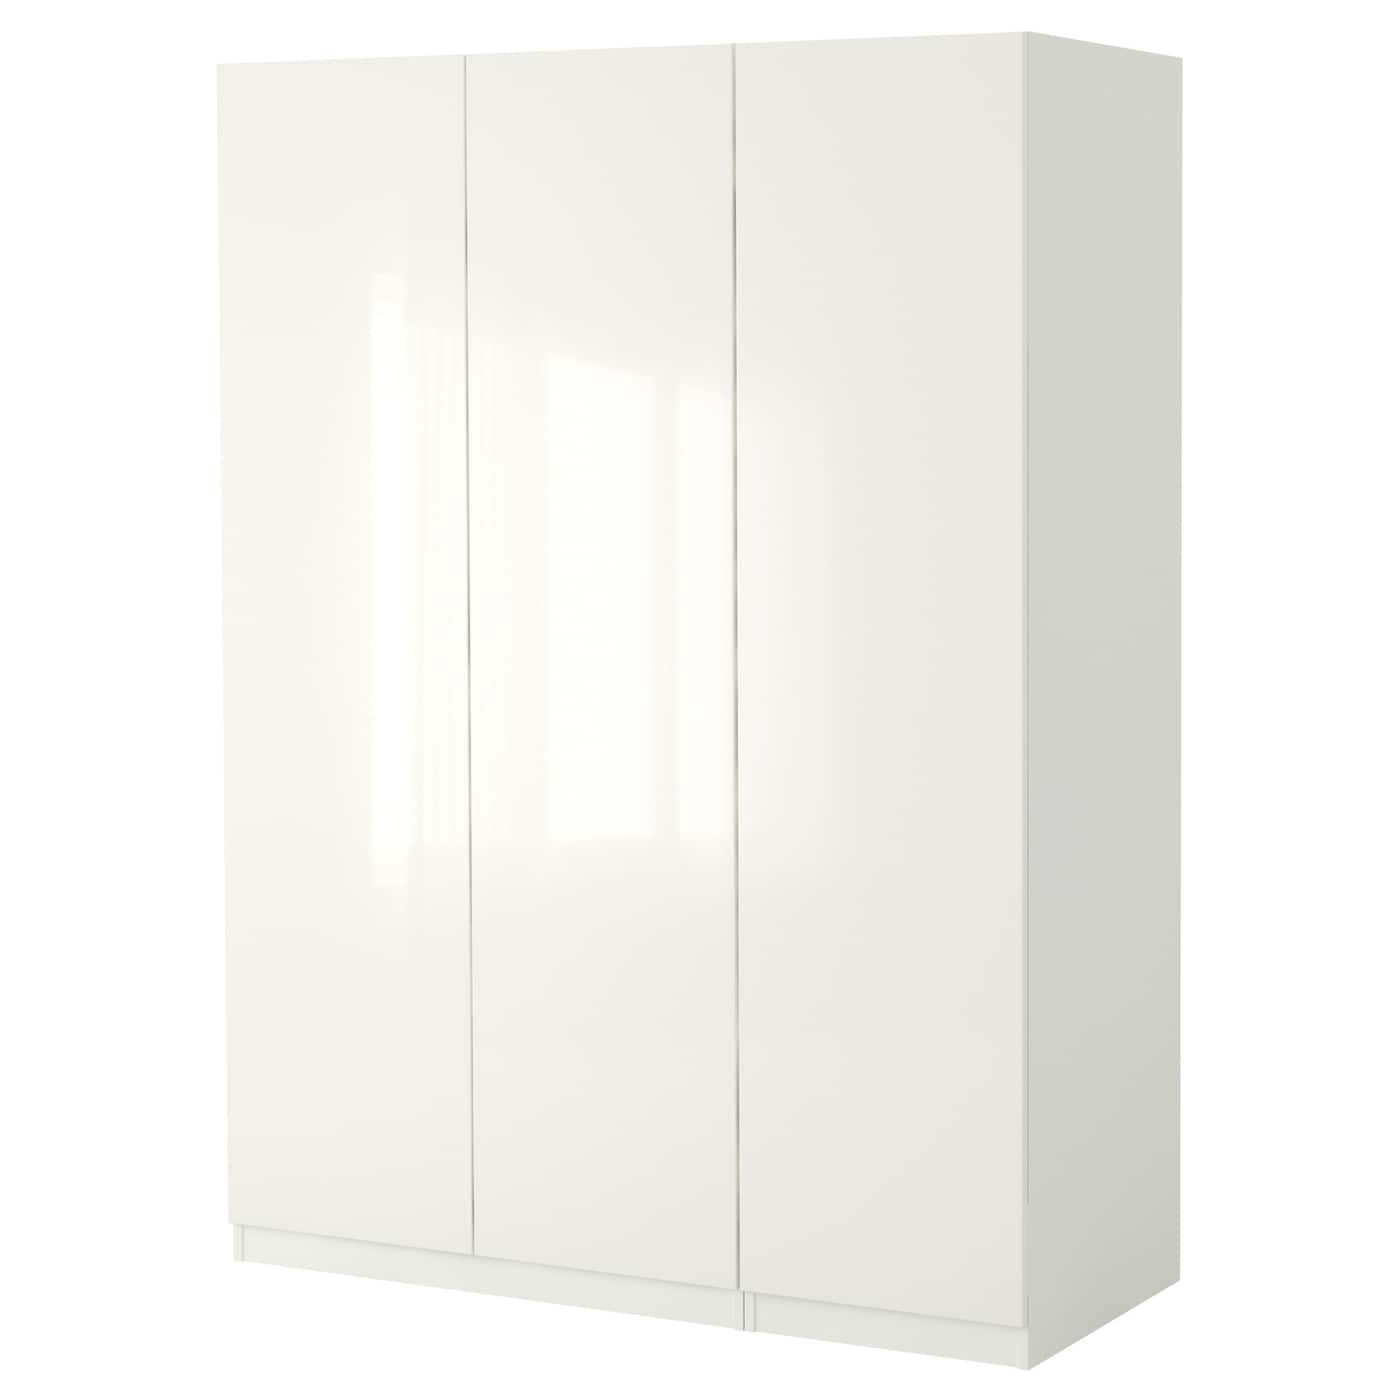 Pax Wardrobe White Fardal High Gloss White 150 X 60 X 236